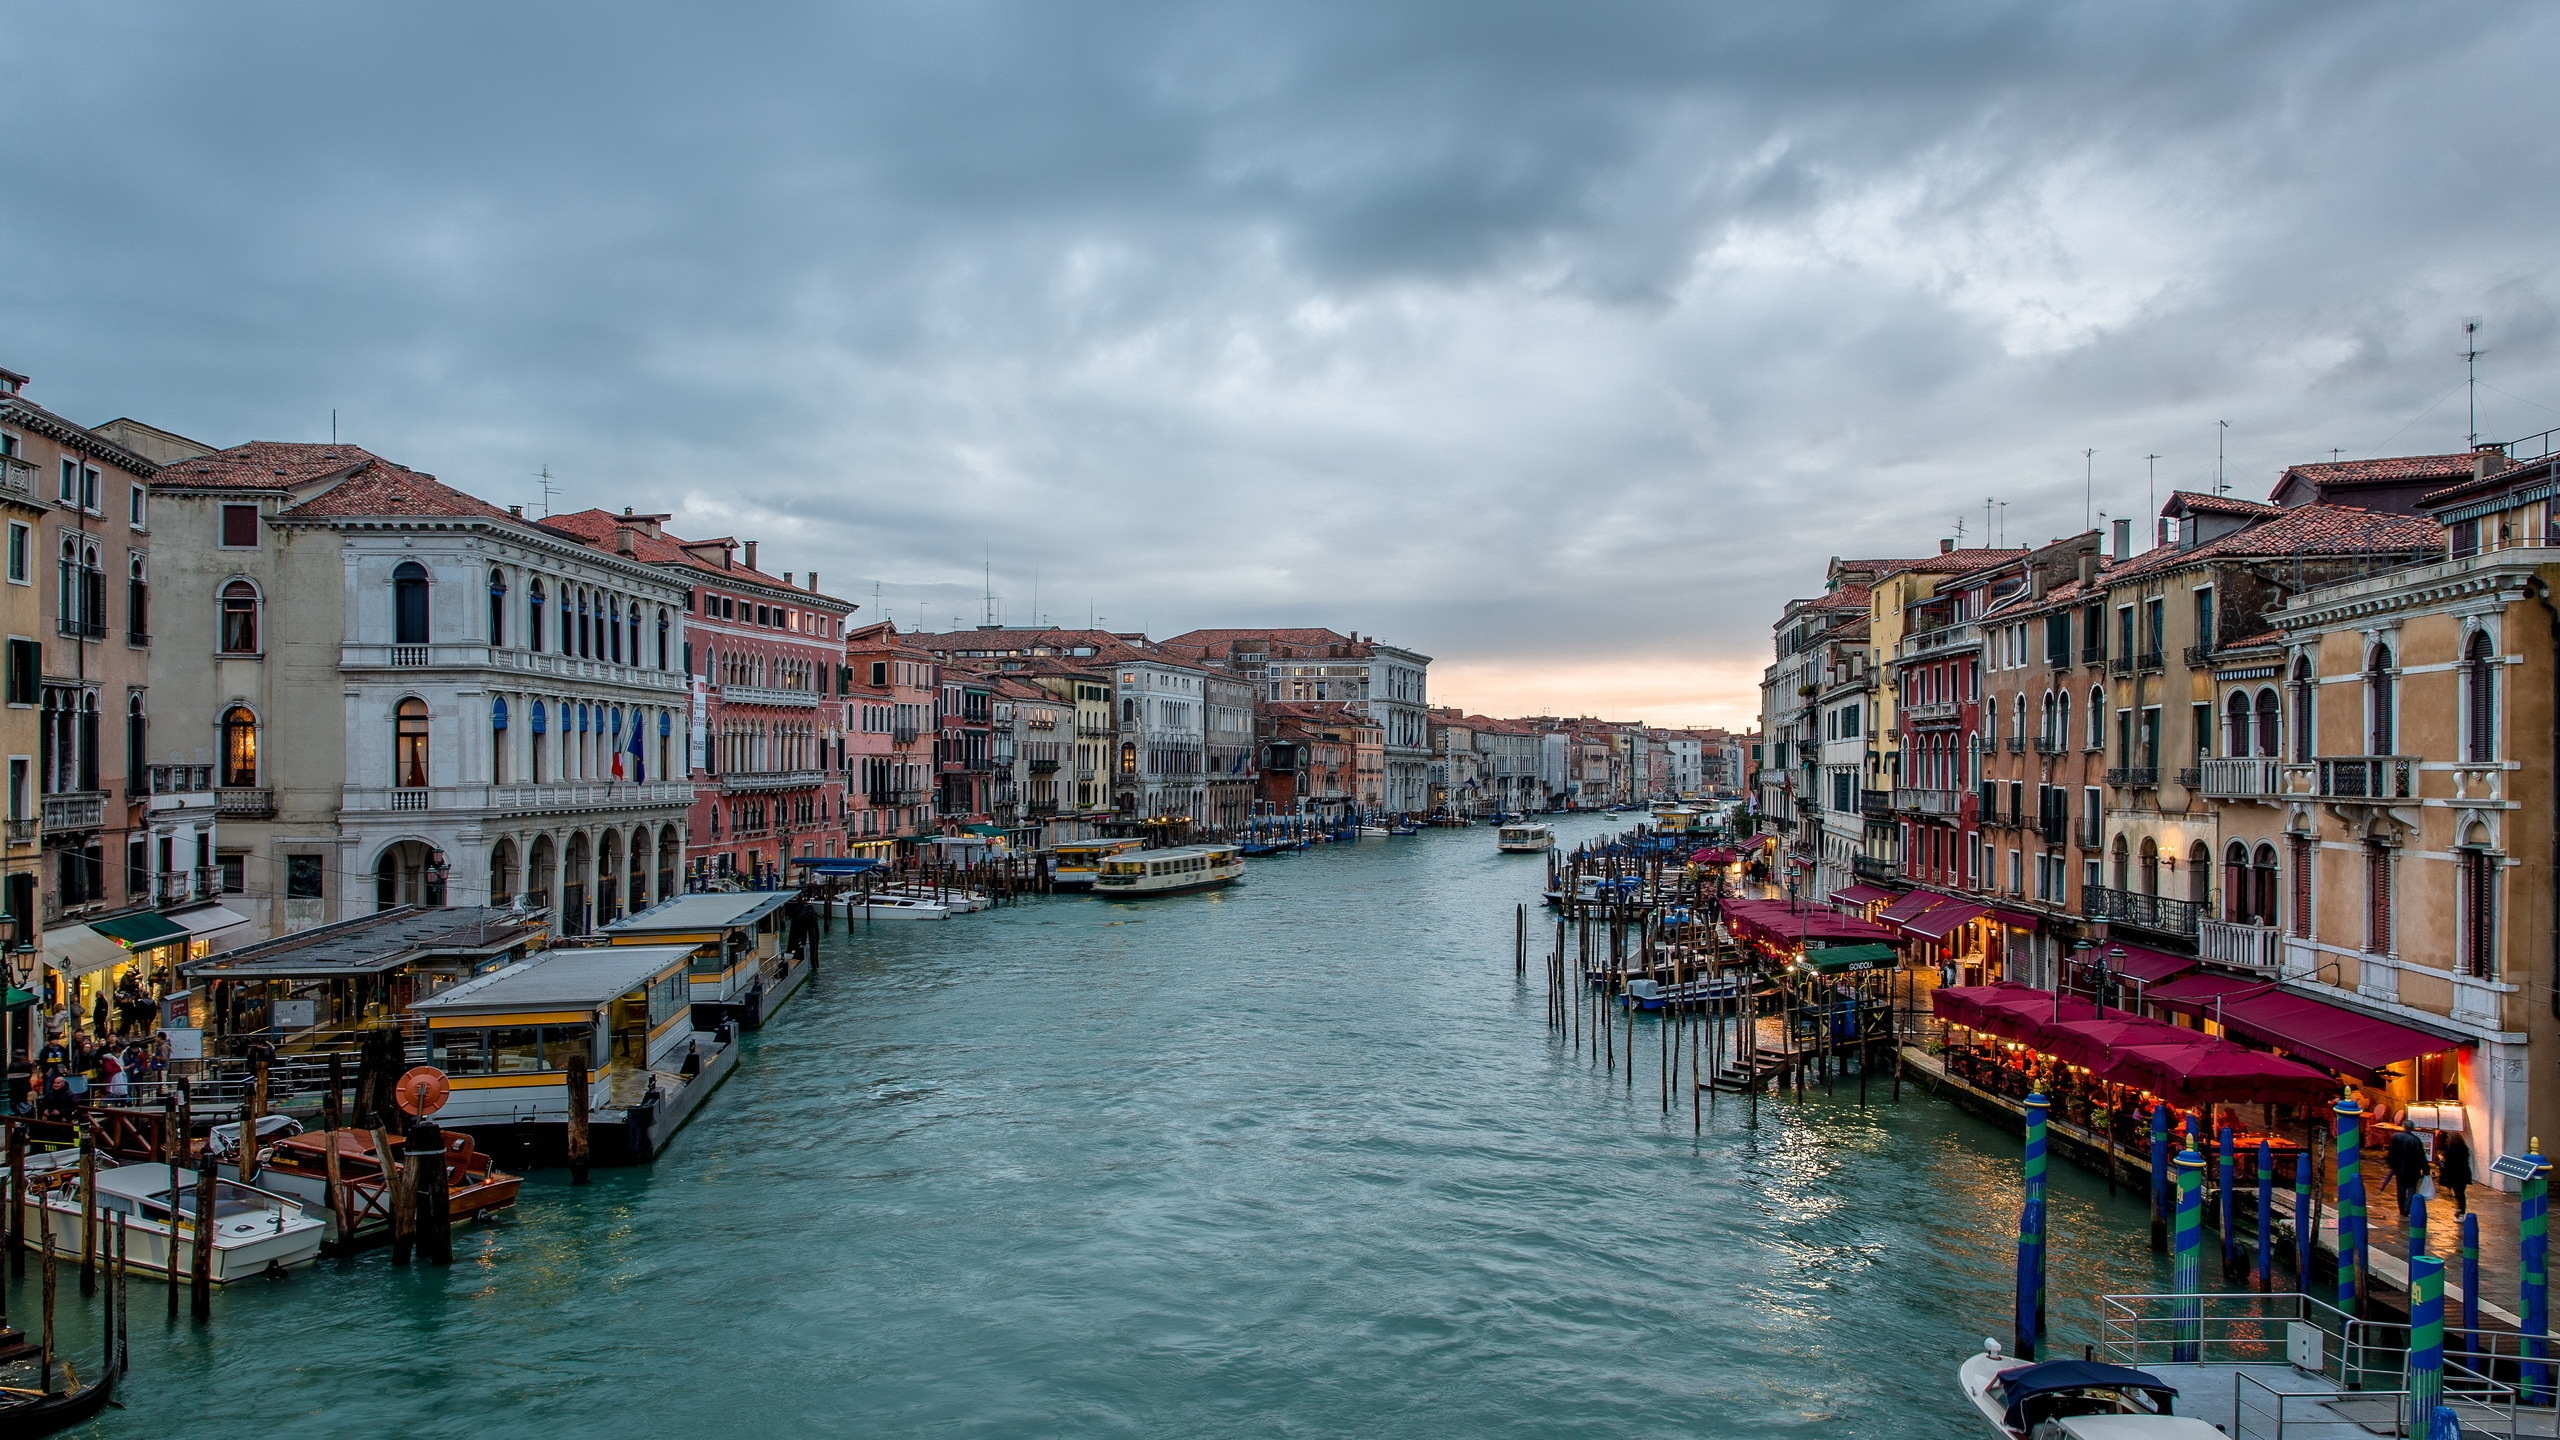 Cloudy Day in Venice for 2560x1440 HDTV resolution